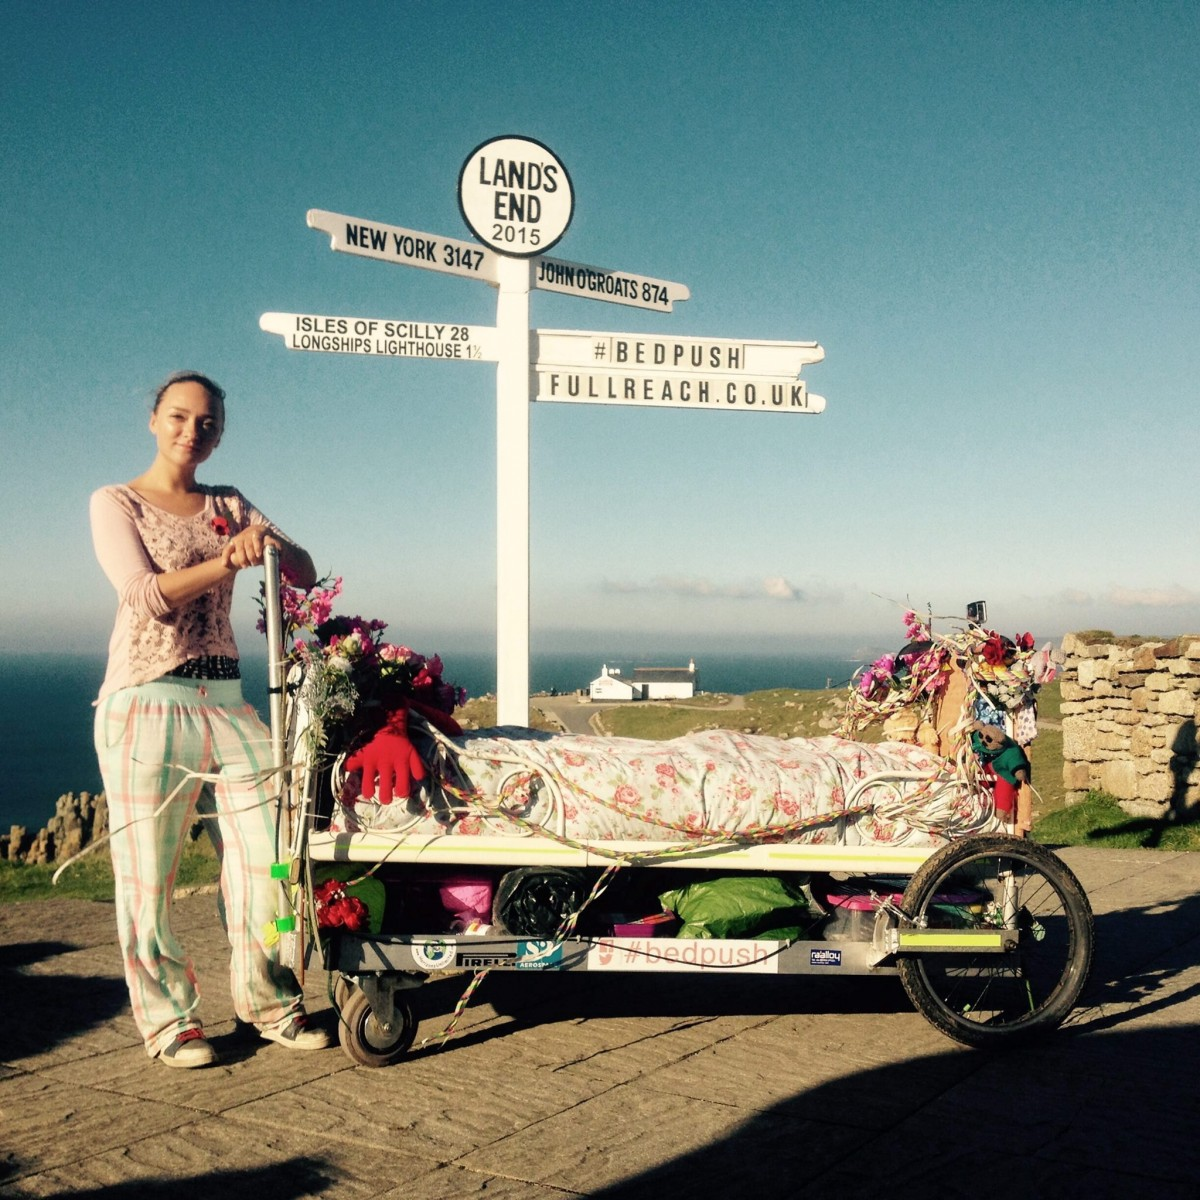 Woman pushes her bed from John O'Groats to Land's End for children's home